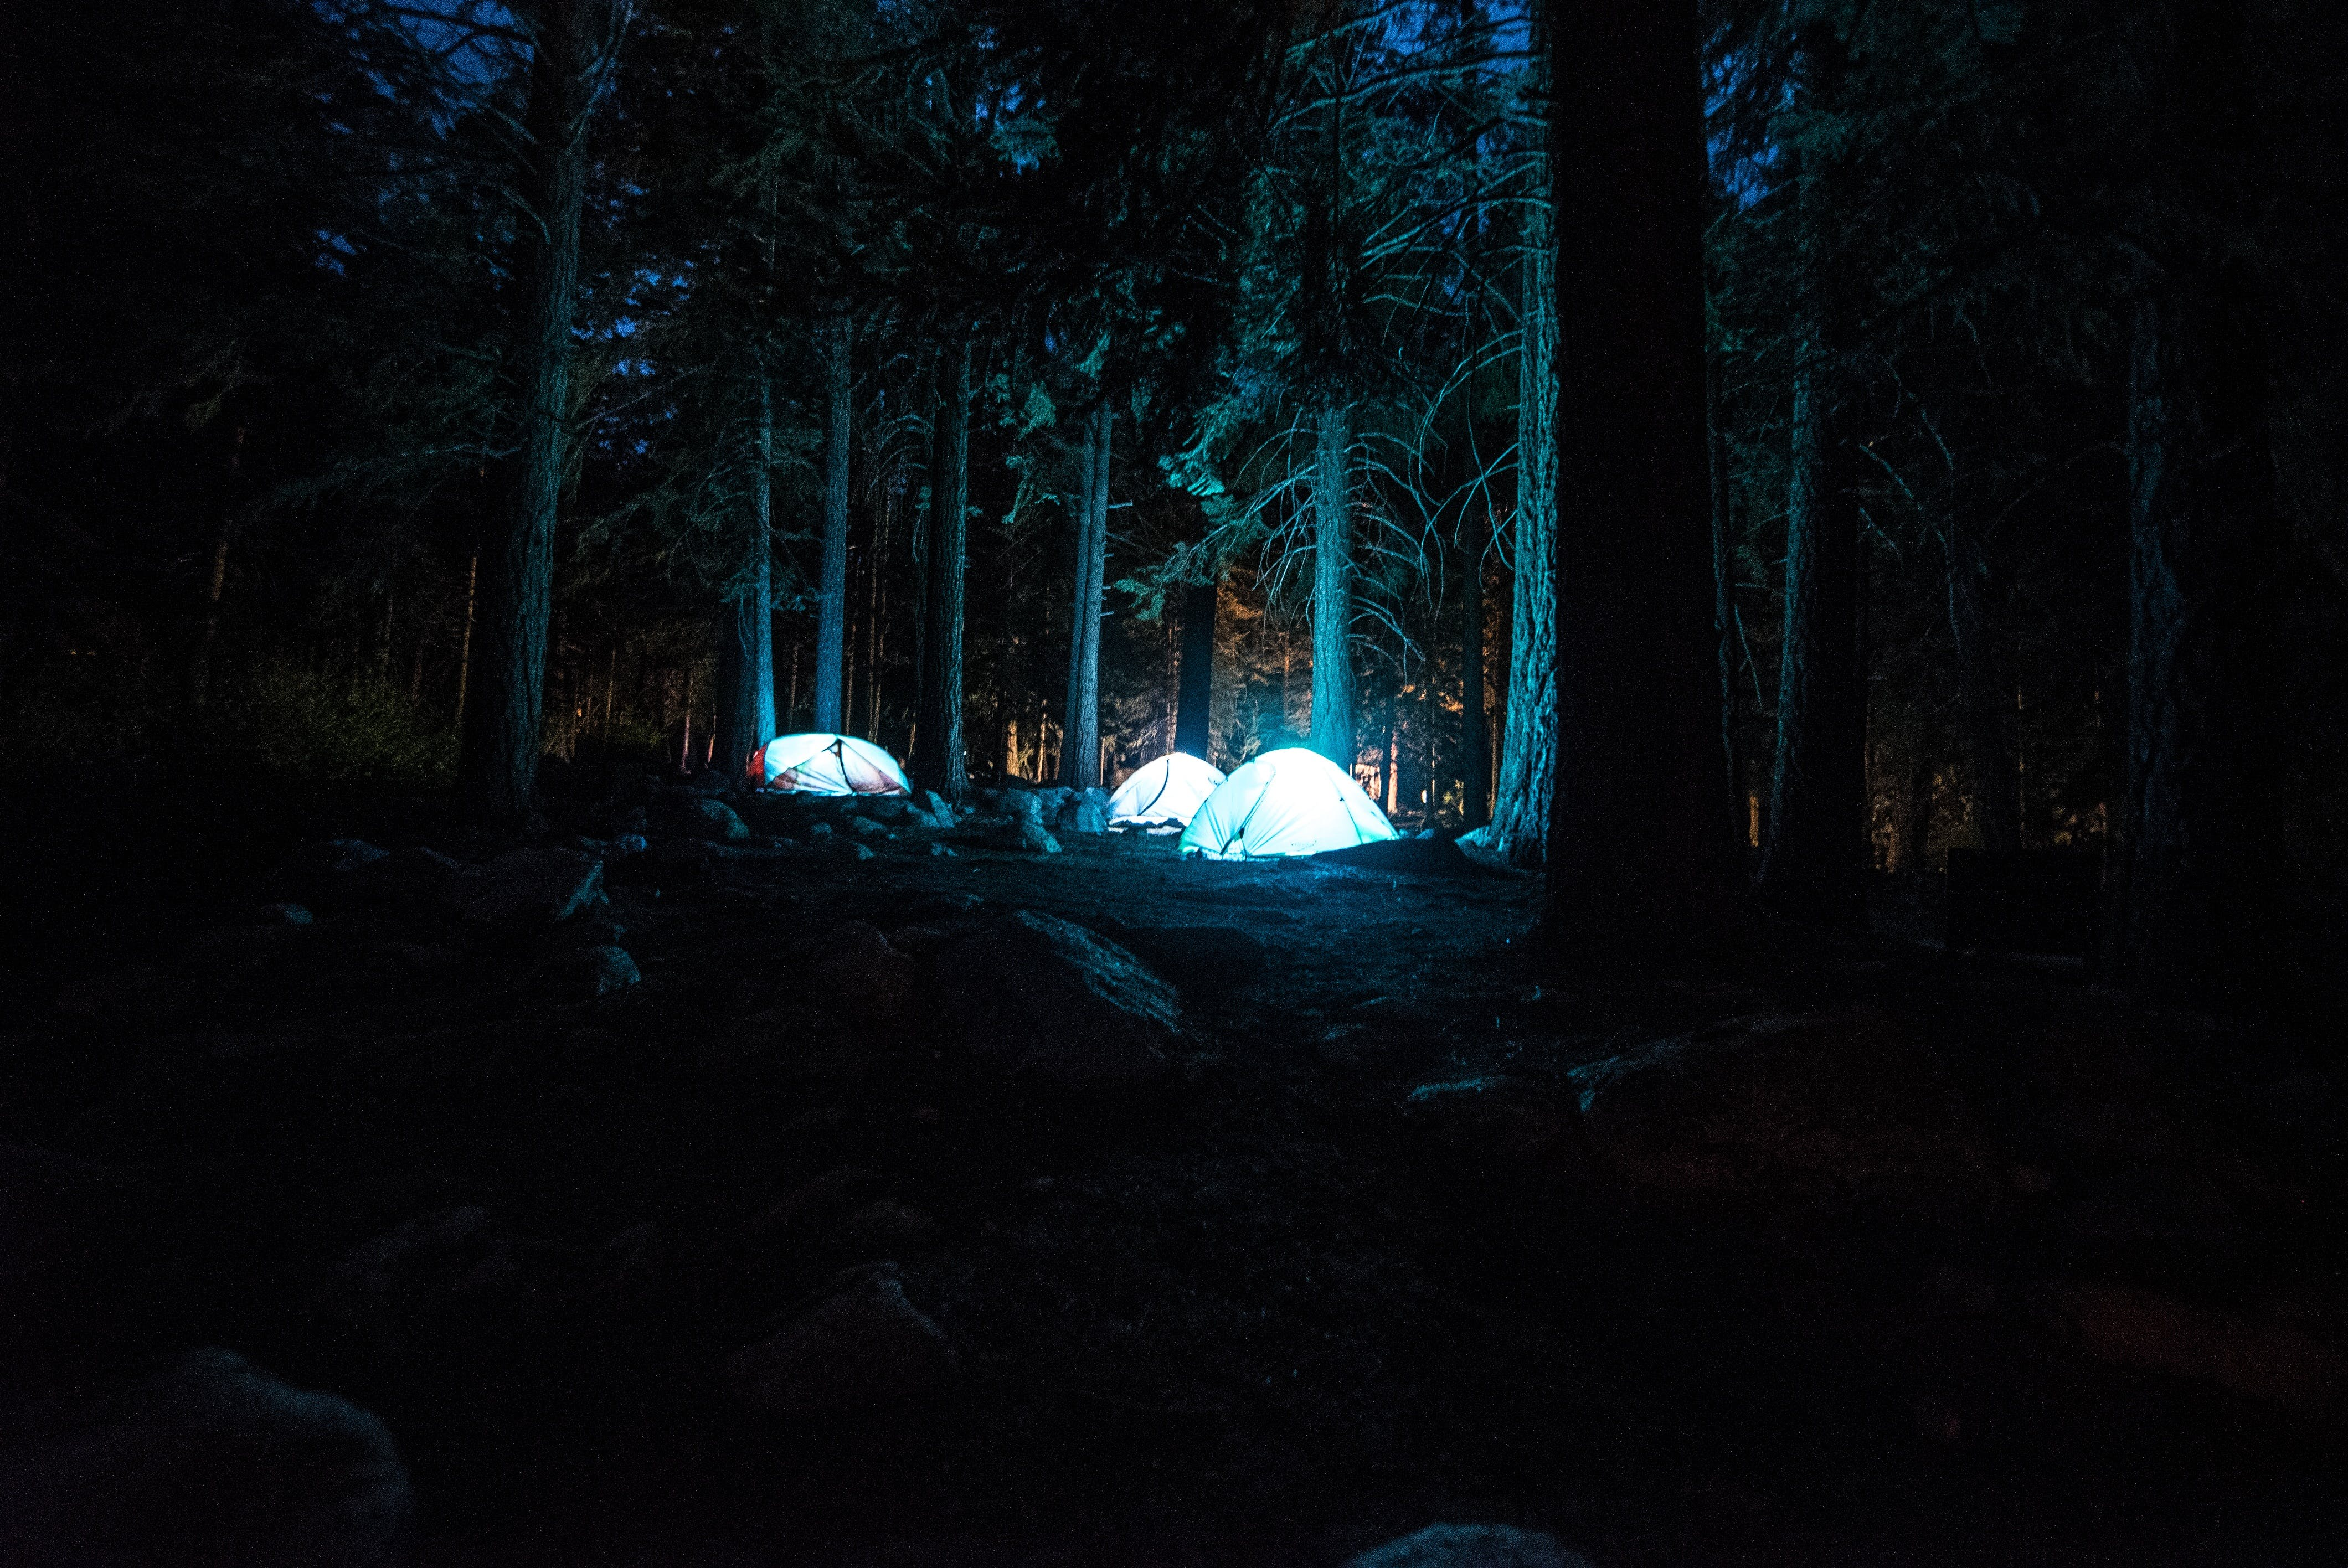 Free stock photo of nature, night, forest, evening